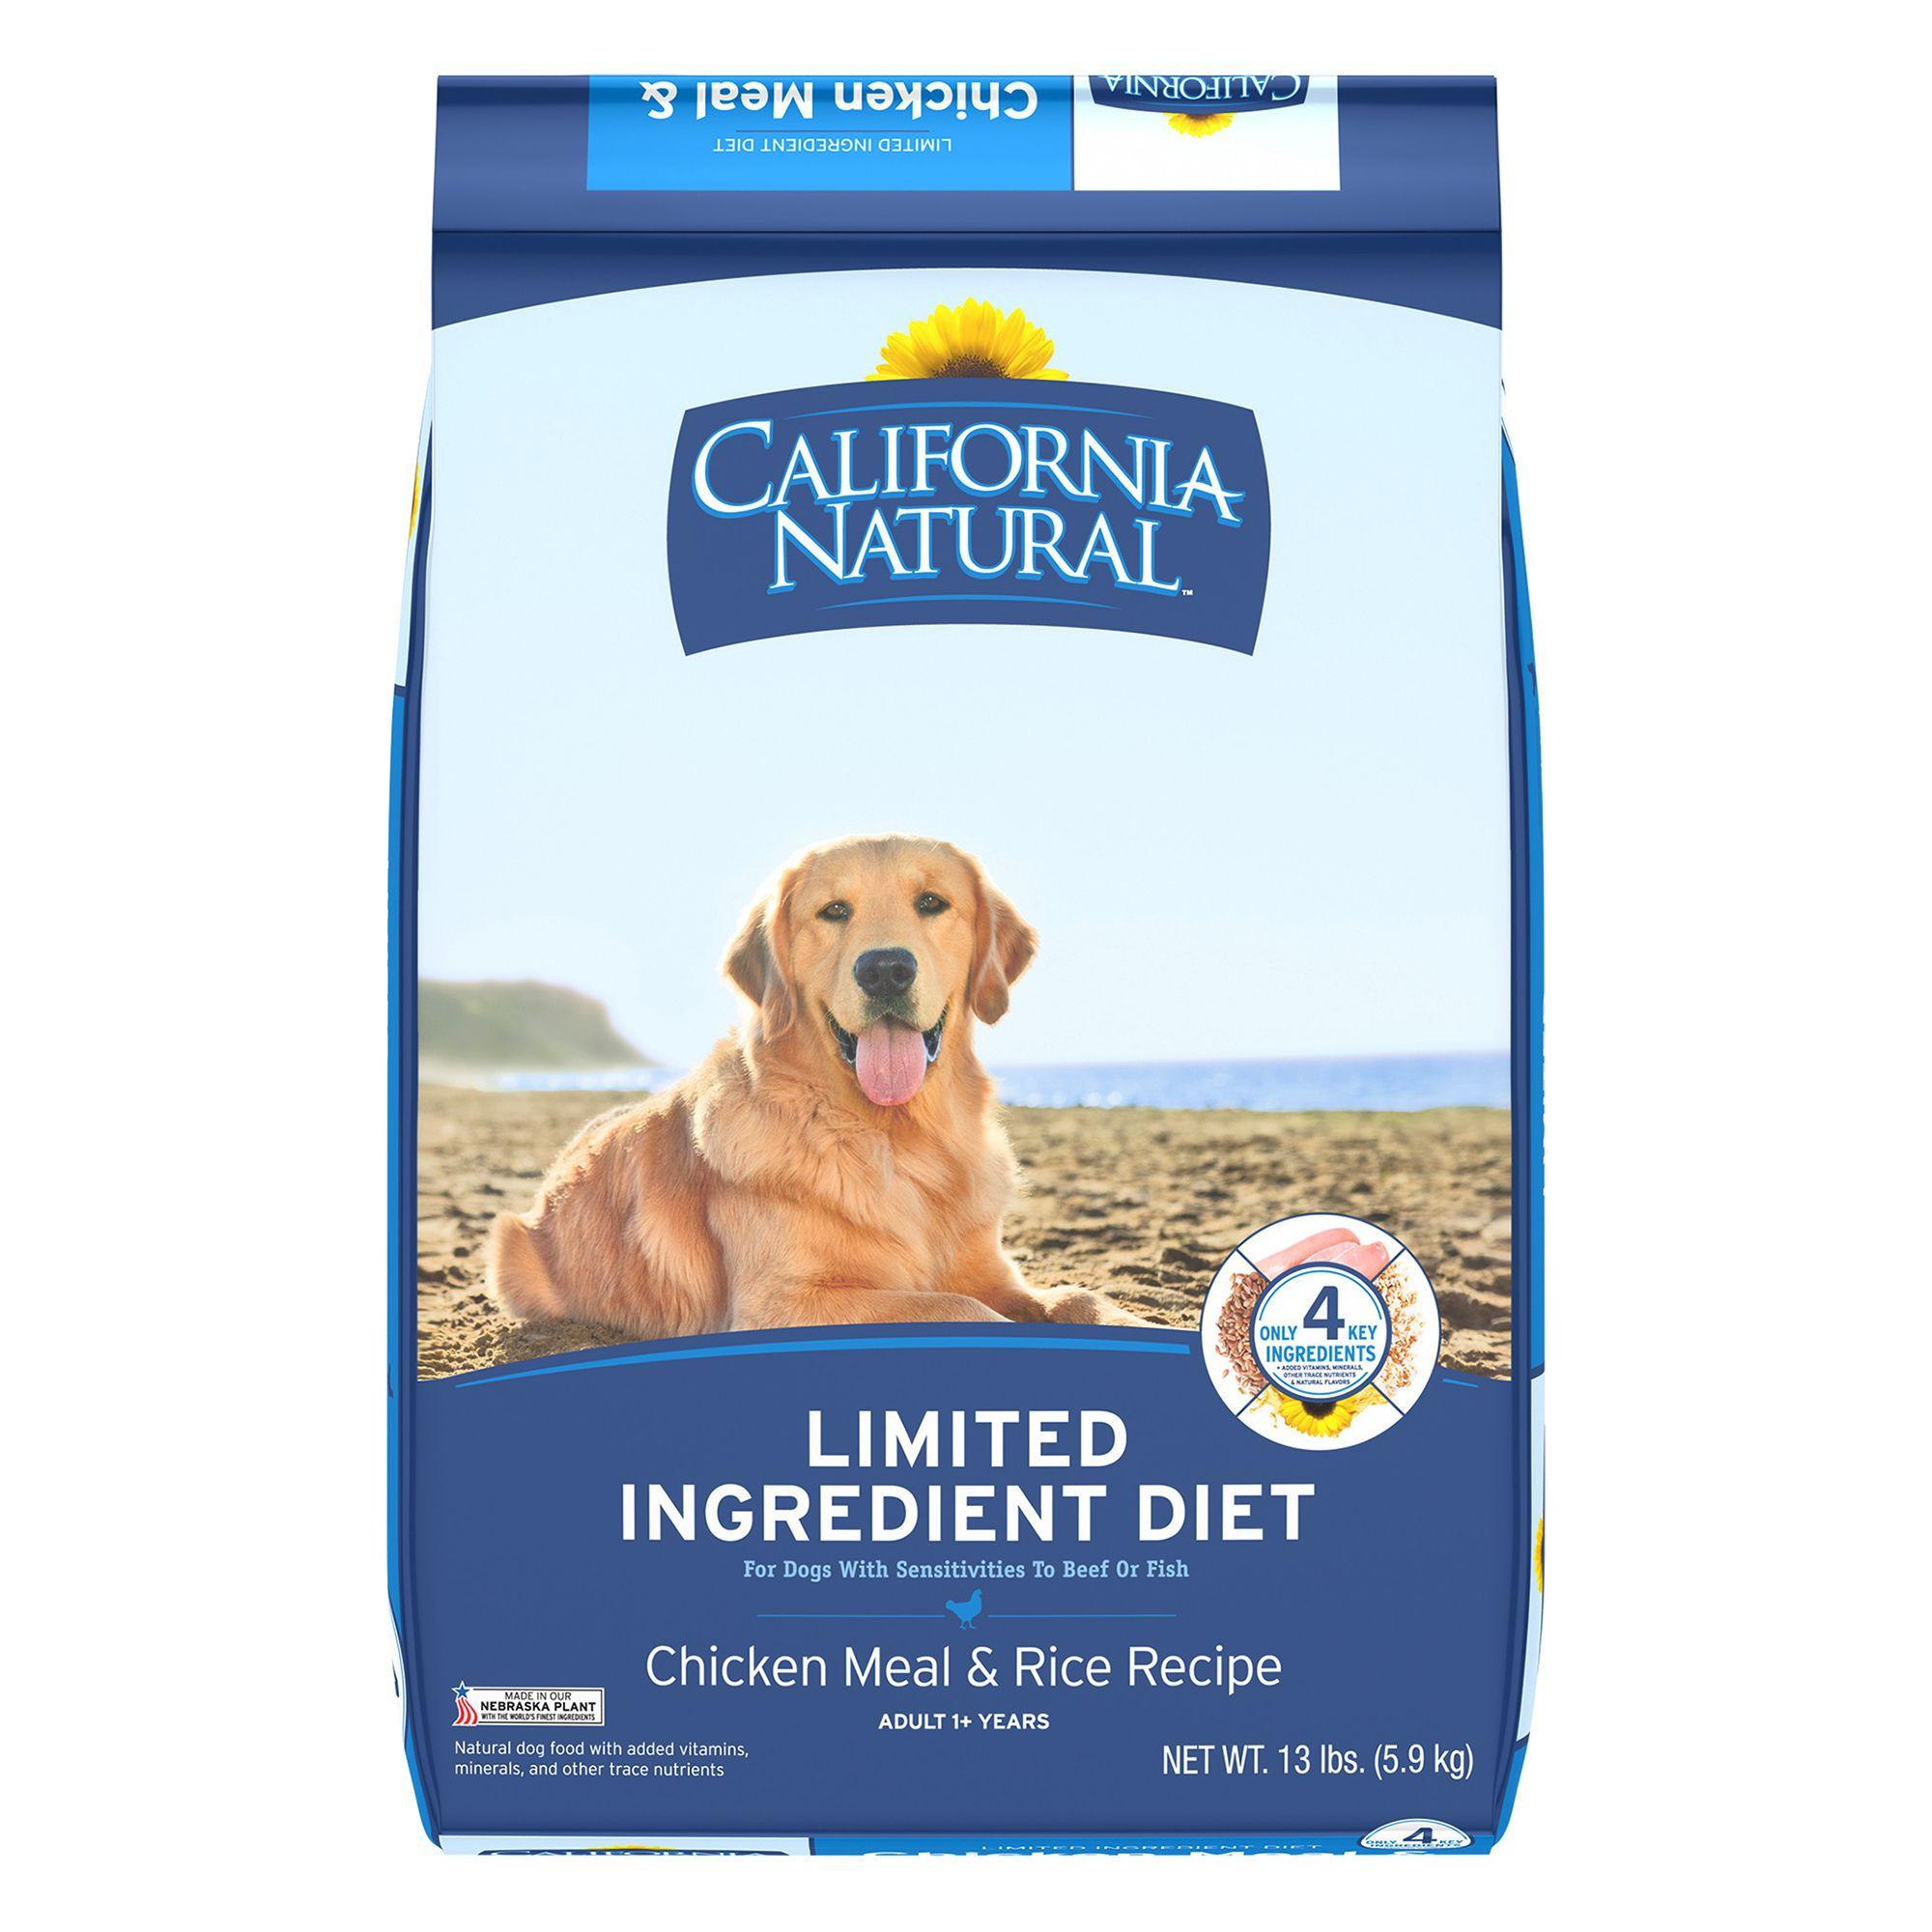 California Natural Limited Ingredient Diet Dog Food Natural Chicken Meal And Rice Size 13 Lb